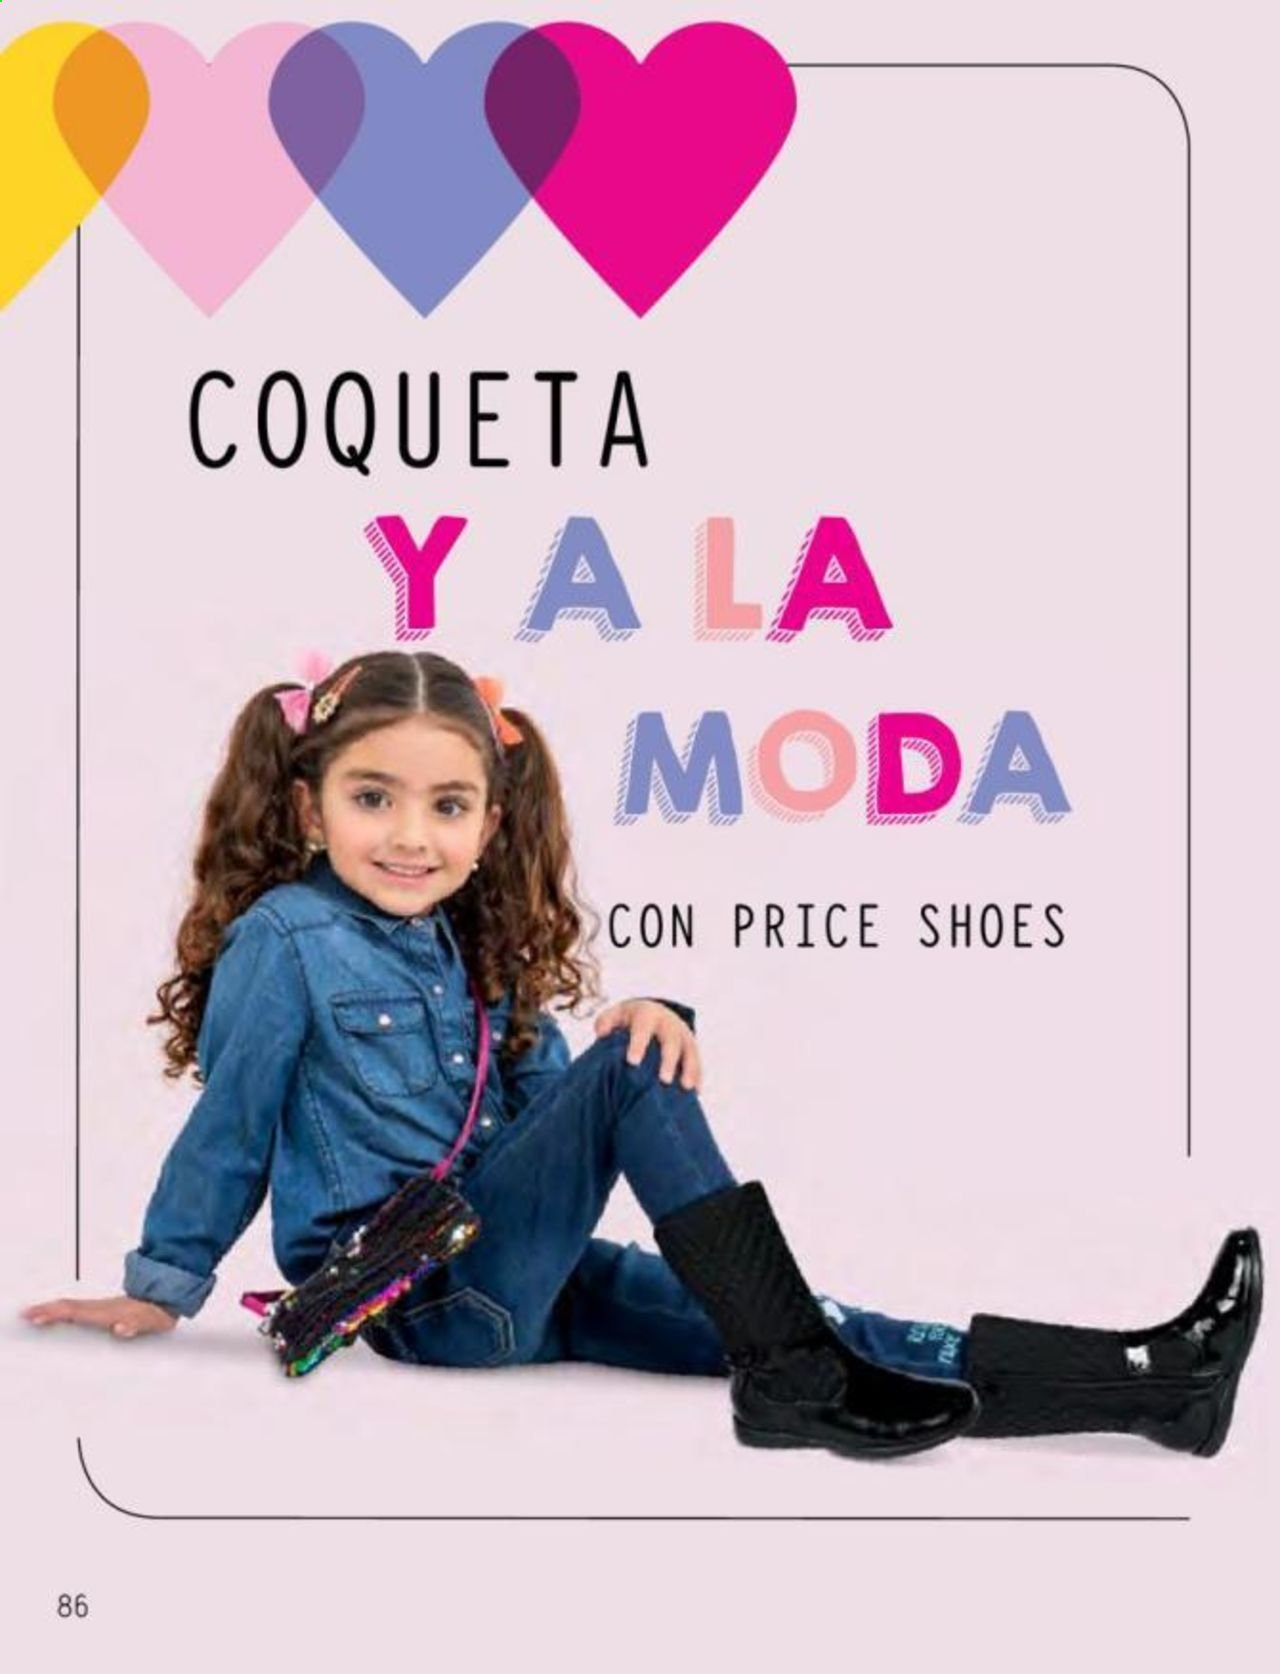 Oferta vigente Price Shoes. Página 86.